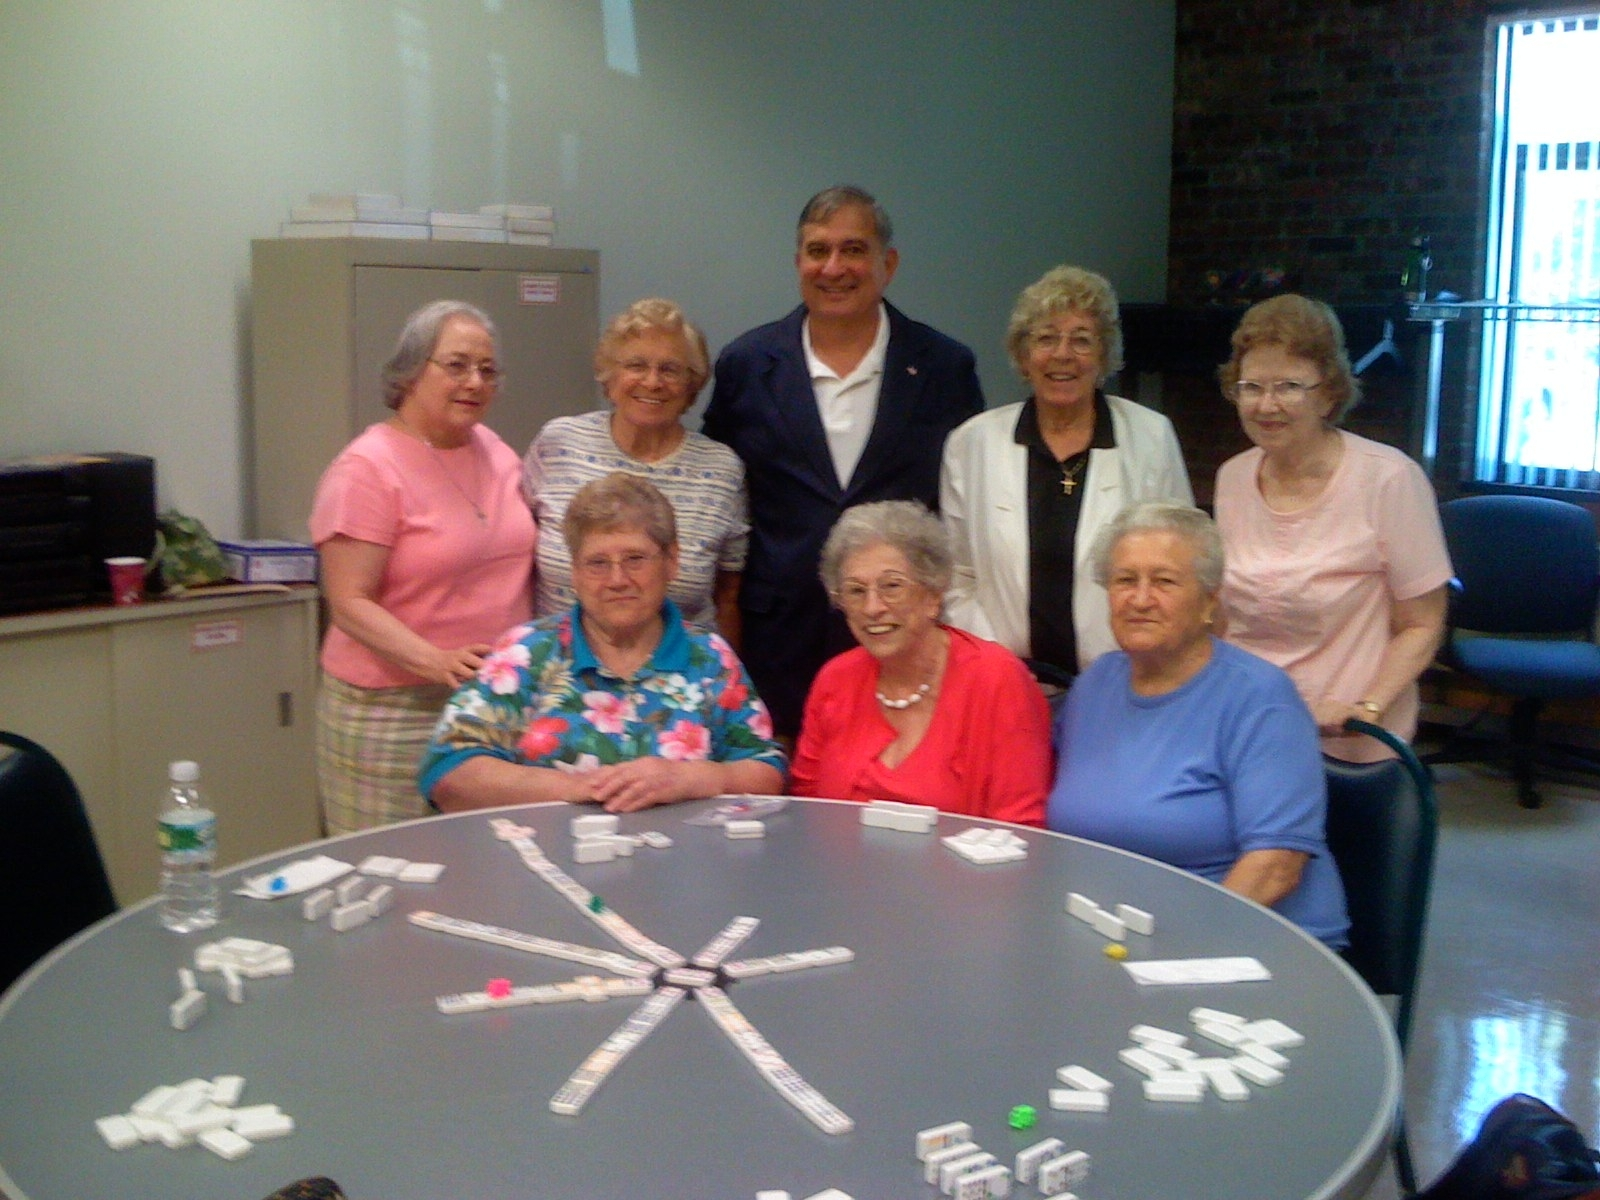 56d92069617ec44e9e5c_Campaign_2013_Mike_with_Seniors.jpg